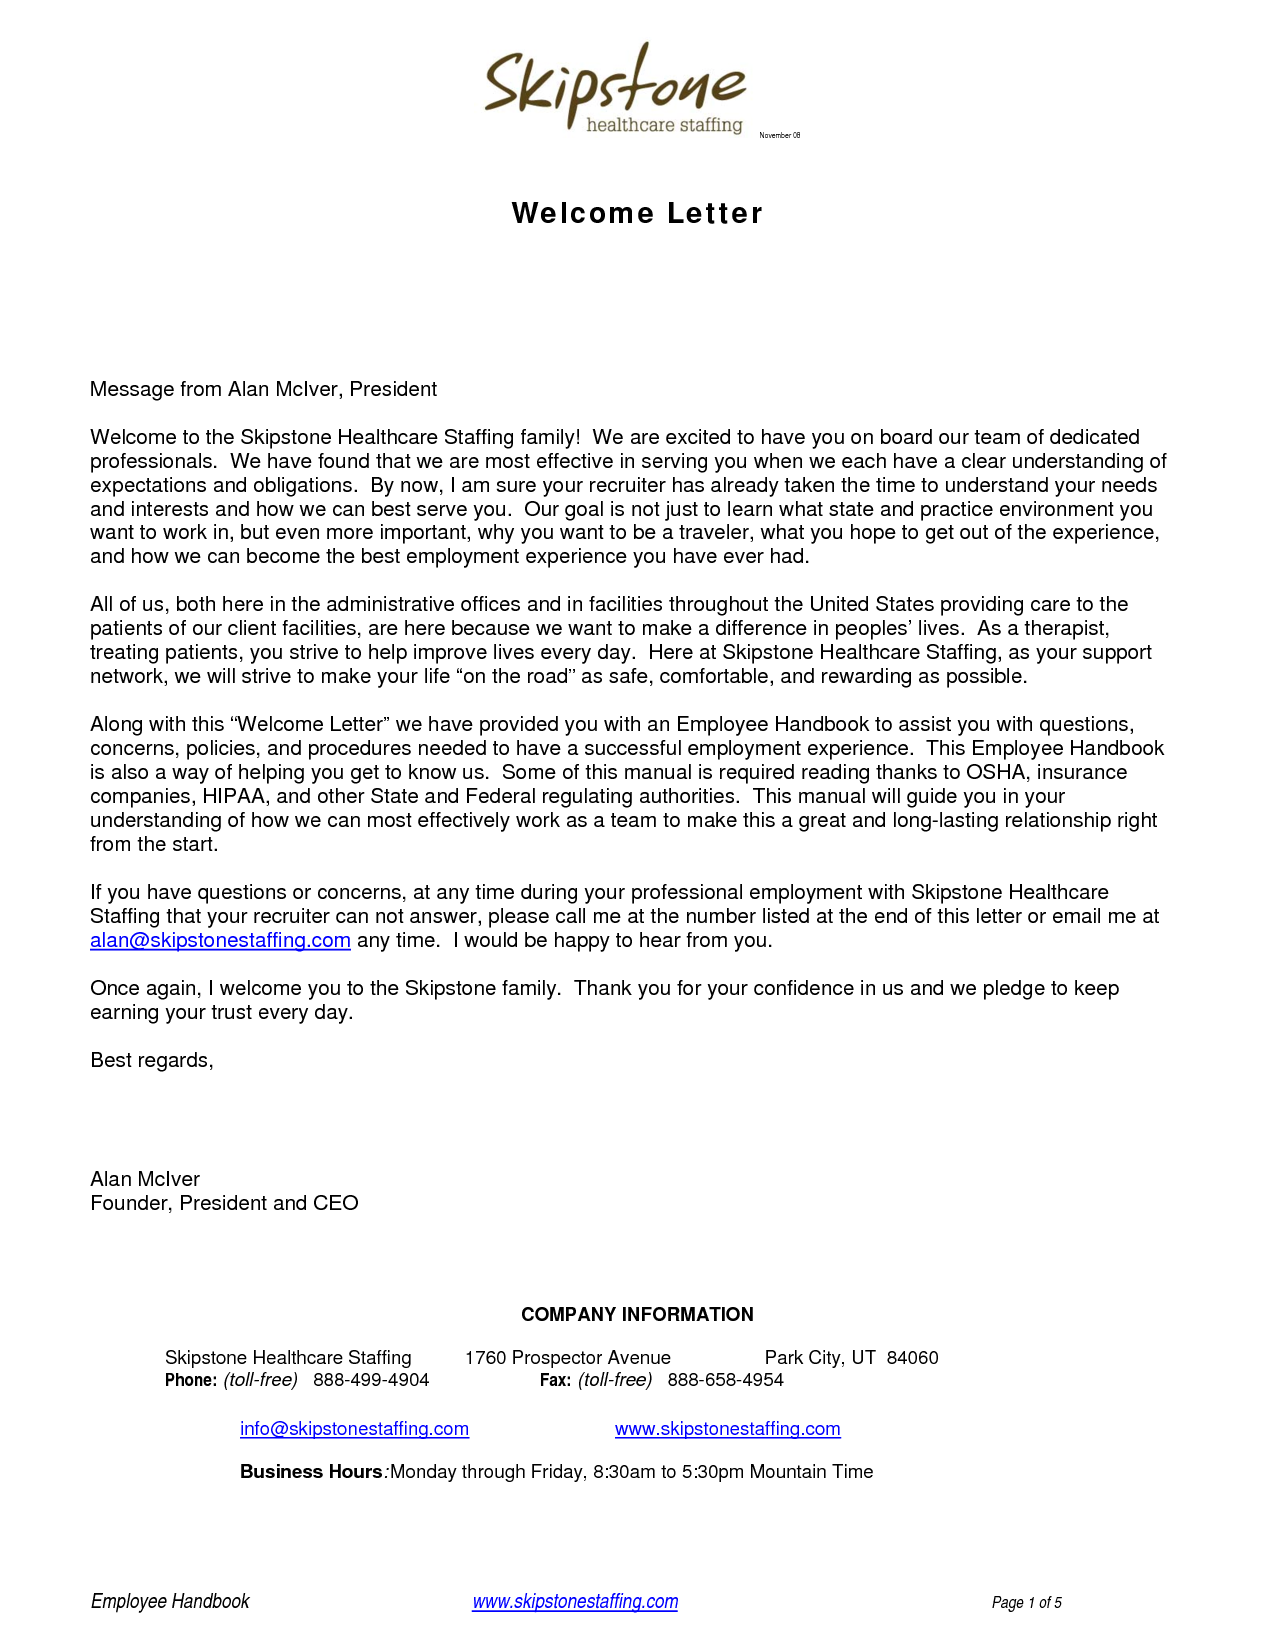 Welcome letters backgroundwelcome letter business letter for Guest house business plan template